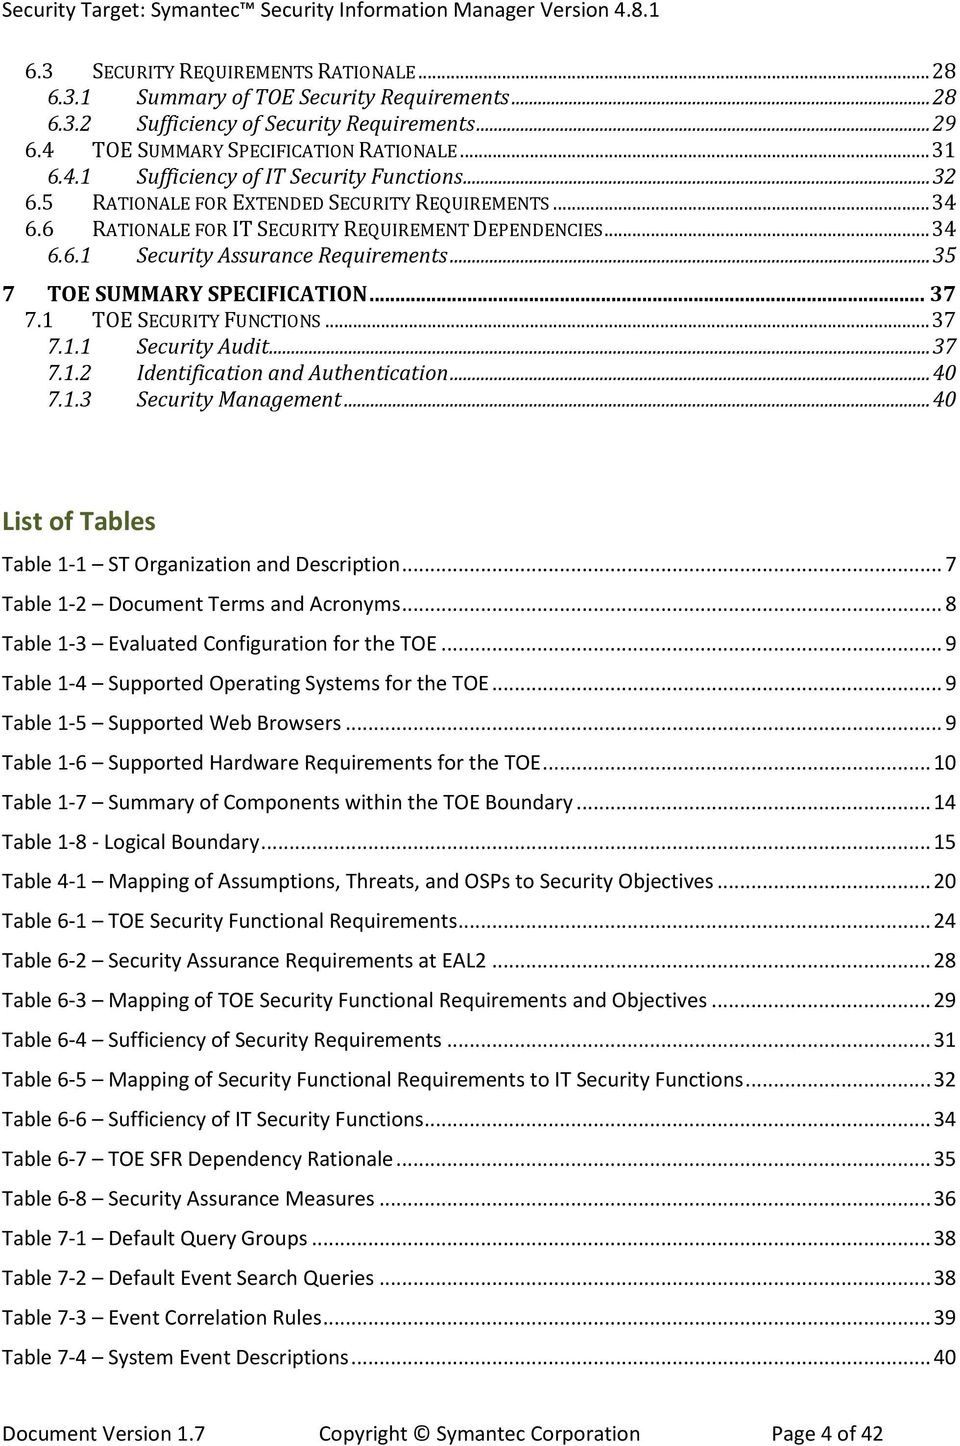 1 TOE SECURITY FUNCTIONS... 37 7.1.1 Security Audit... 37 7.1.2 Identification and Authentication... 40 7.1.3 Security Management... 40 List of Tables Table 1-1 ST Organization and Description.